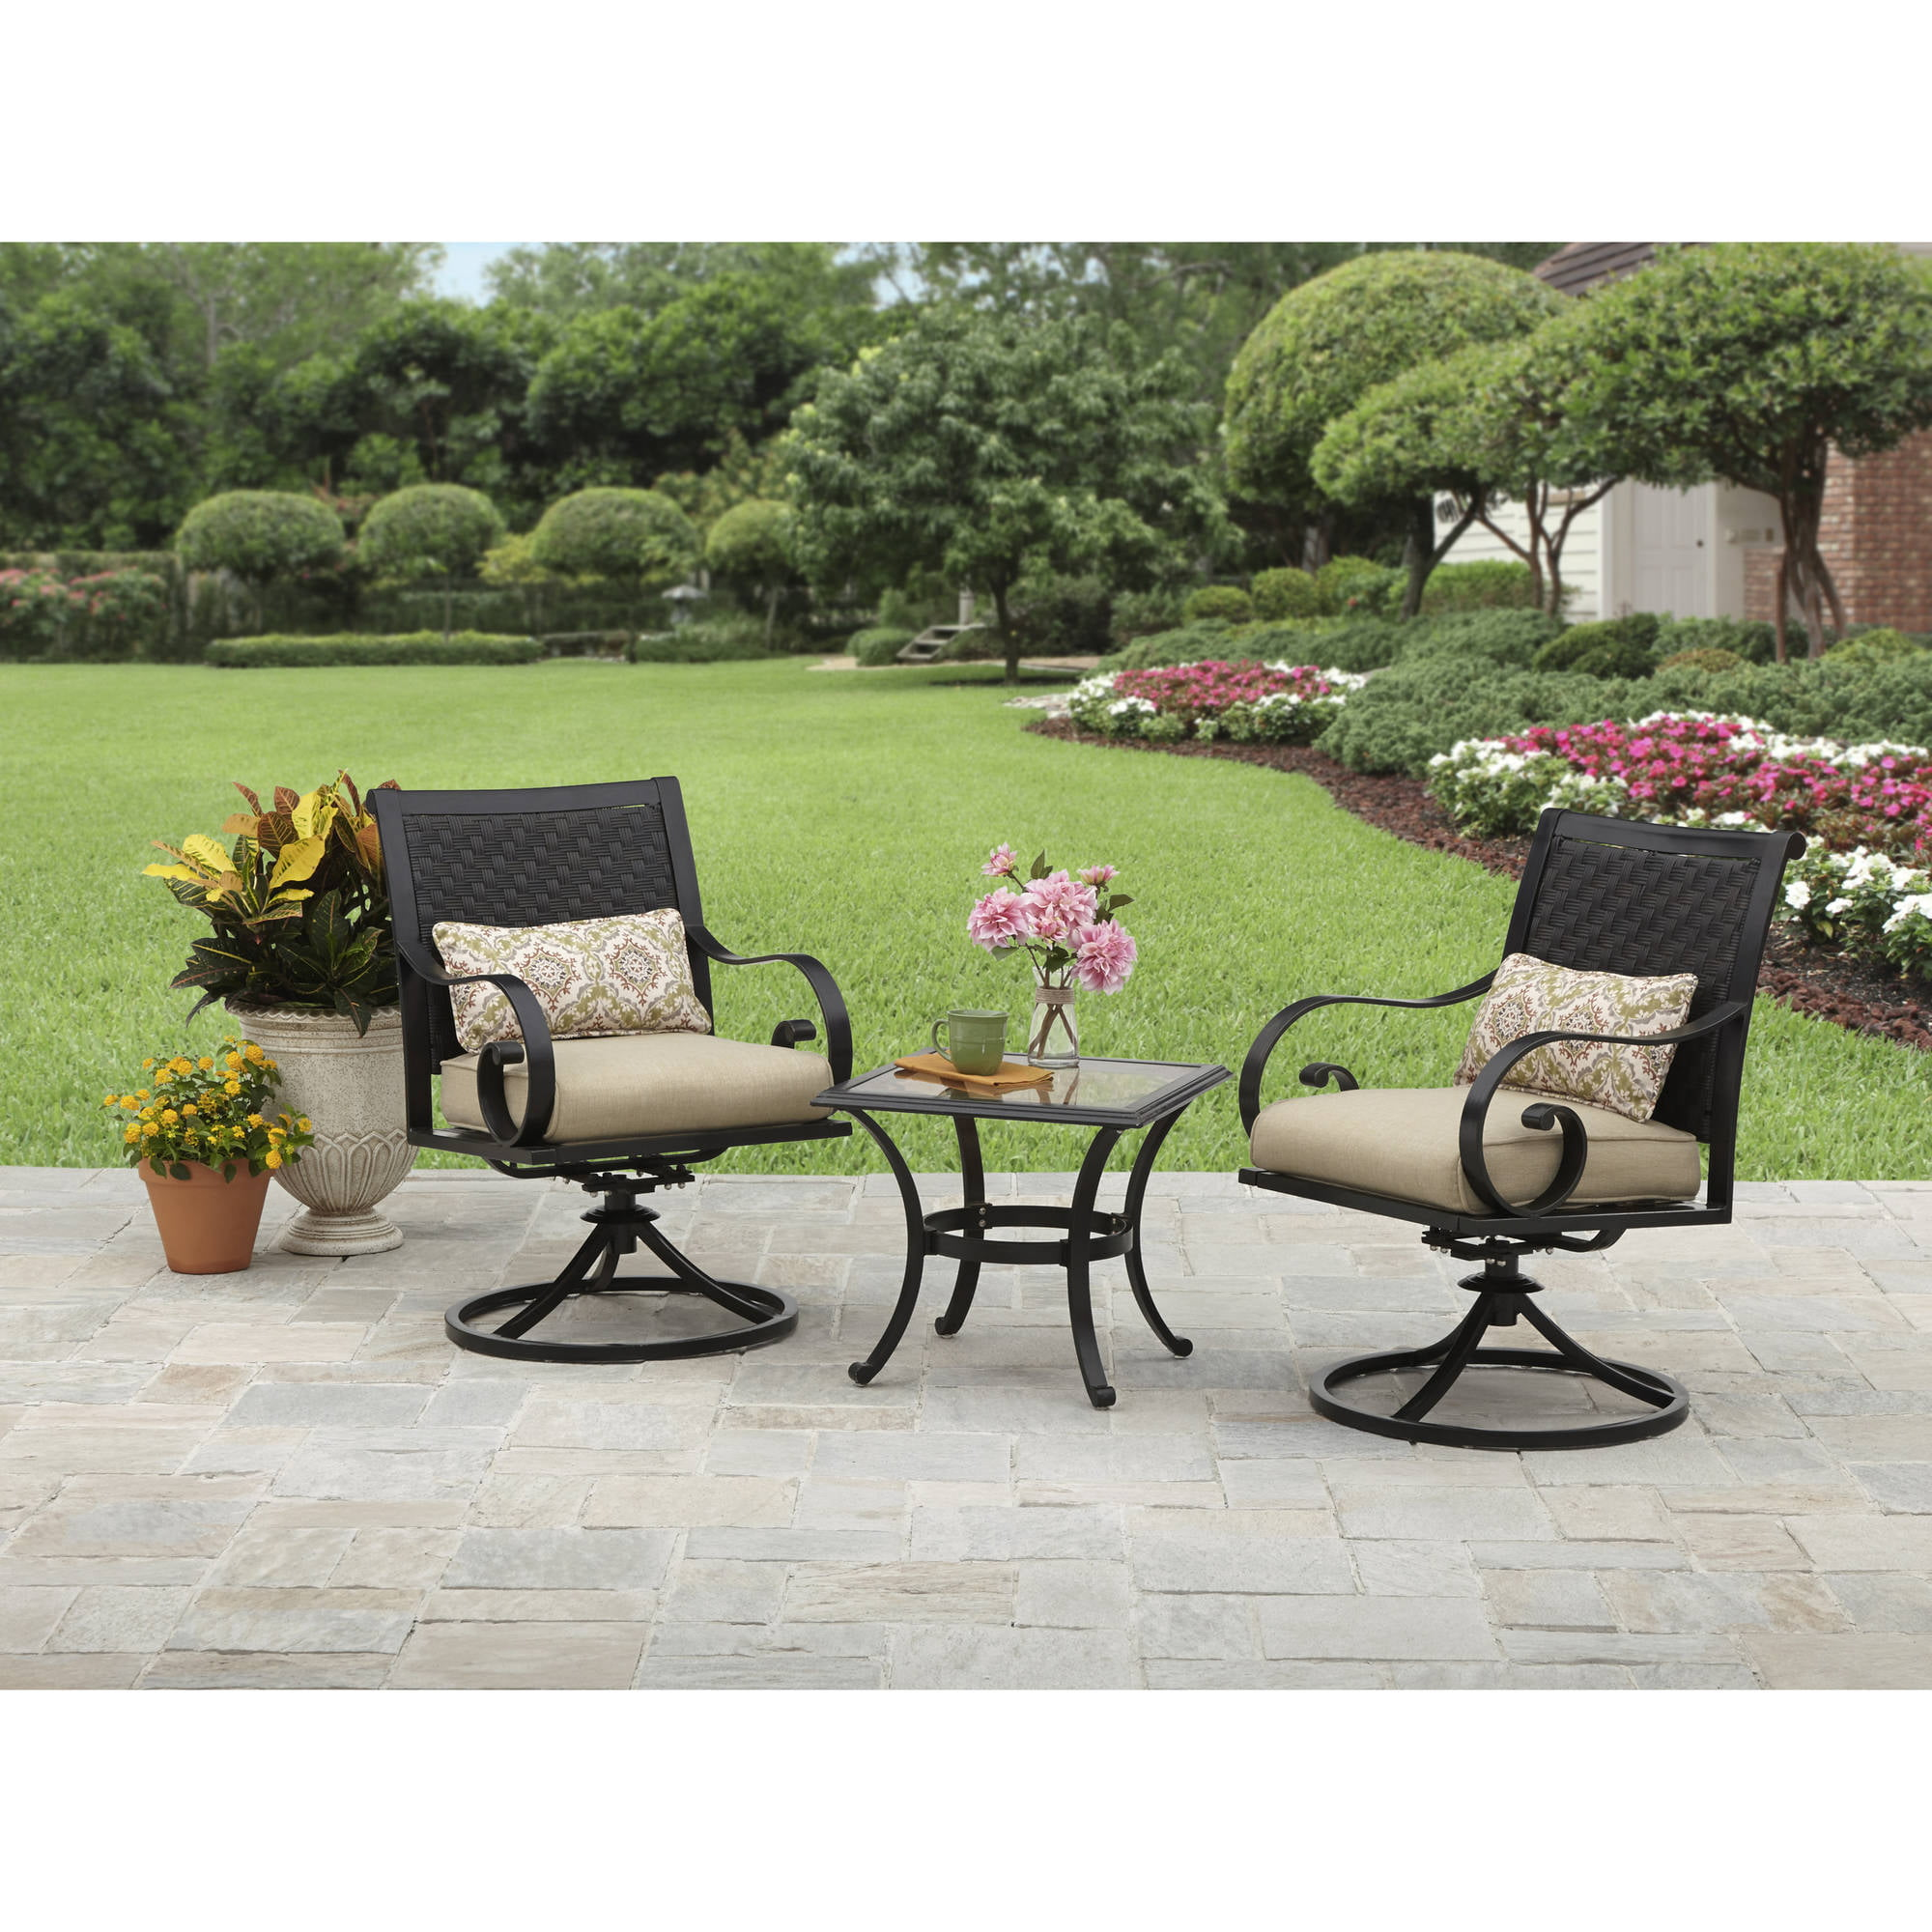 Better Homes and Gardens Englewood Heights II Aluminum 2 Piece